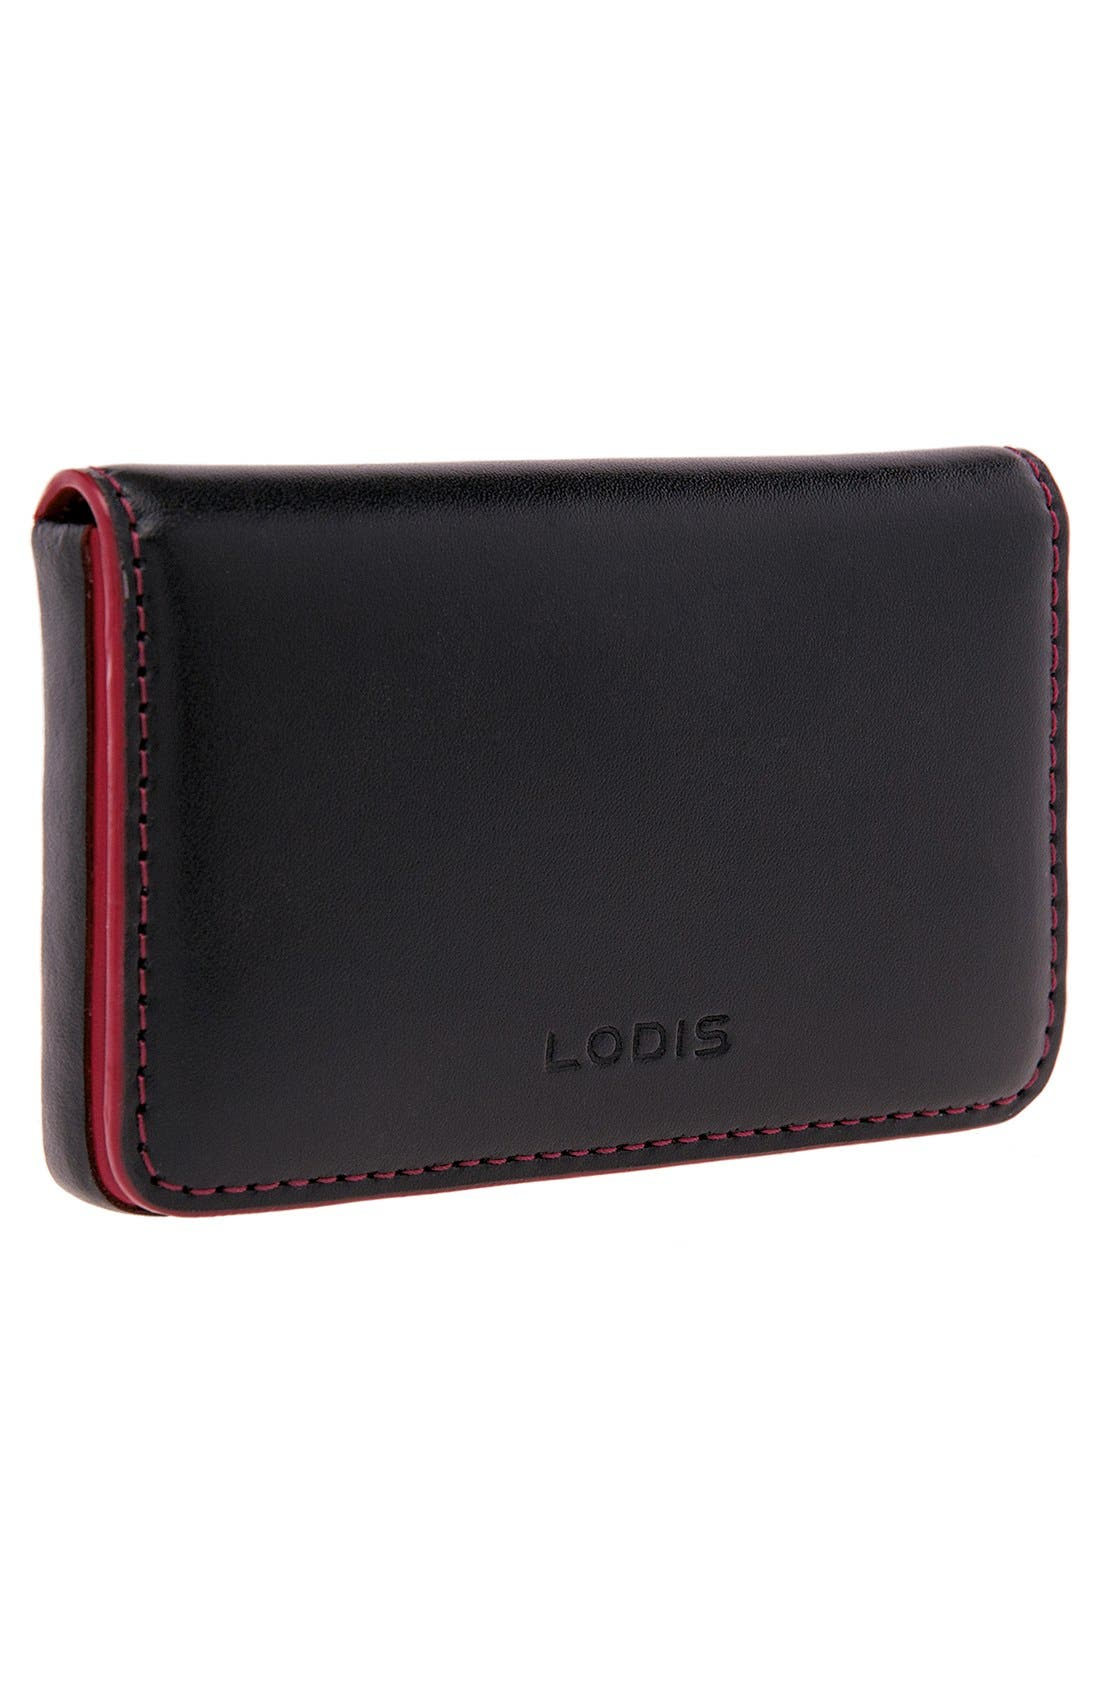 Alternate Image 1 Selected - Lodis Mini Card Case